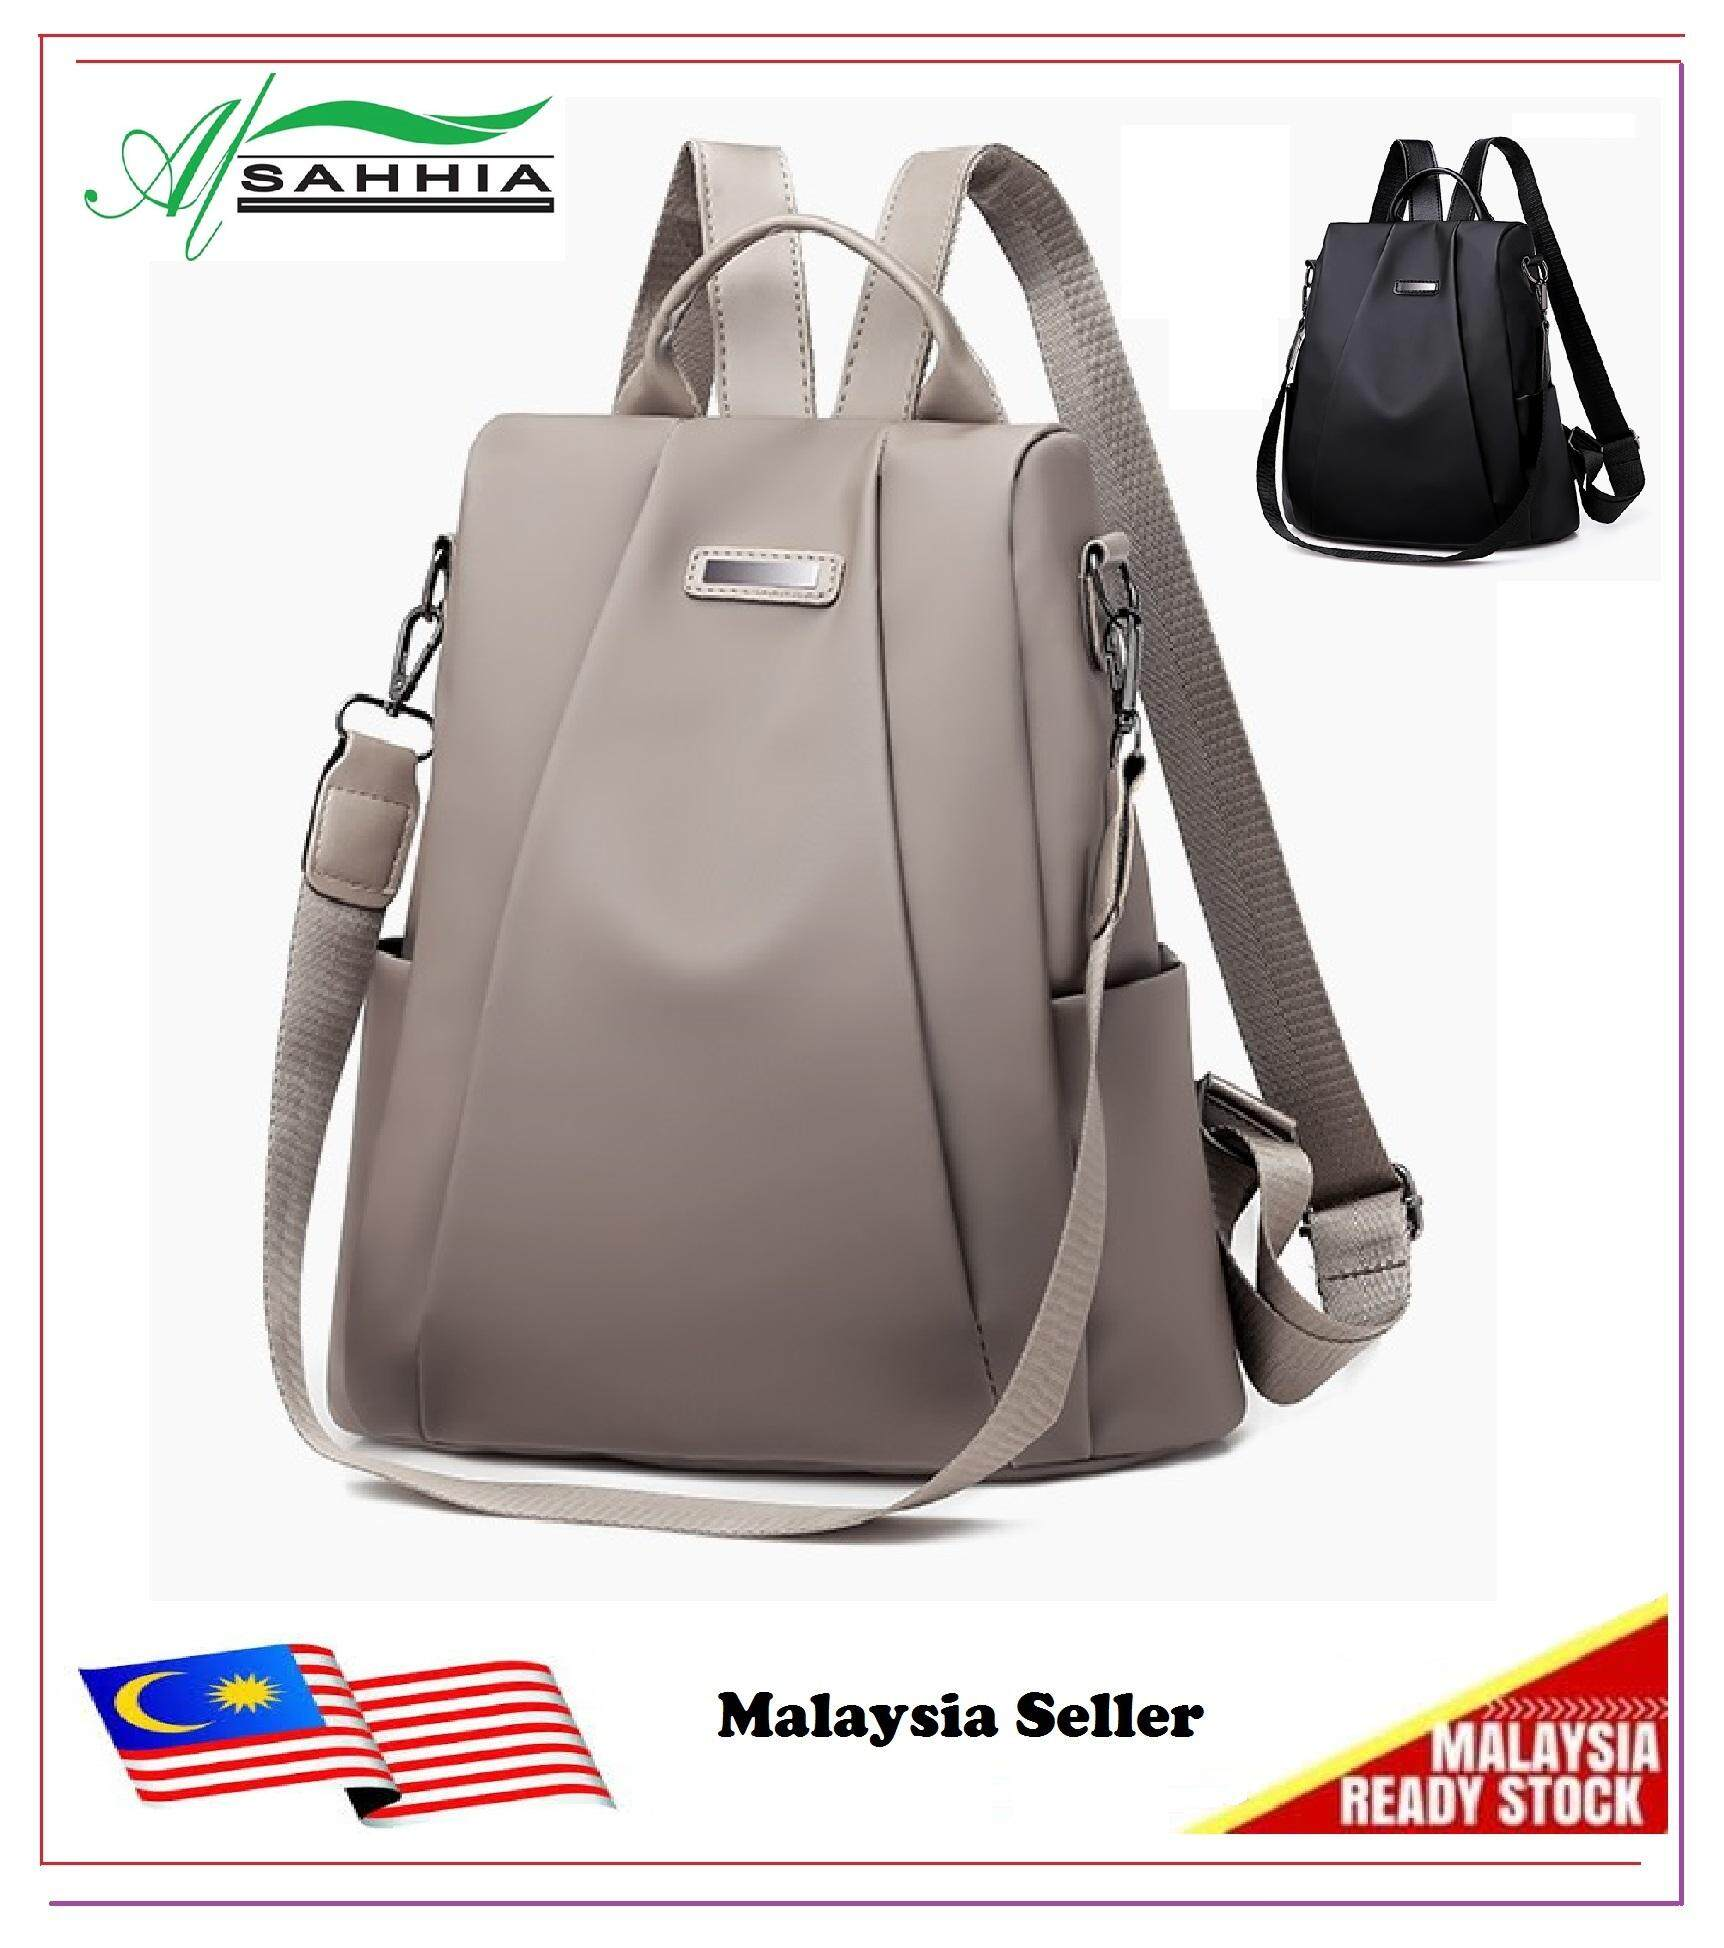 a09a50d2267 Al Sahhia Ready Stock Korean Style Teenage Anti Theft Backpack Casual Lady  Beg